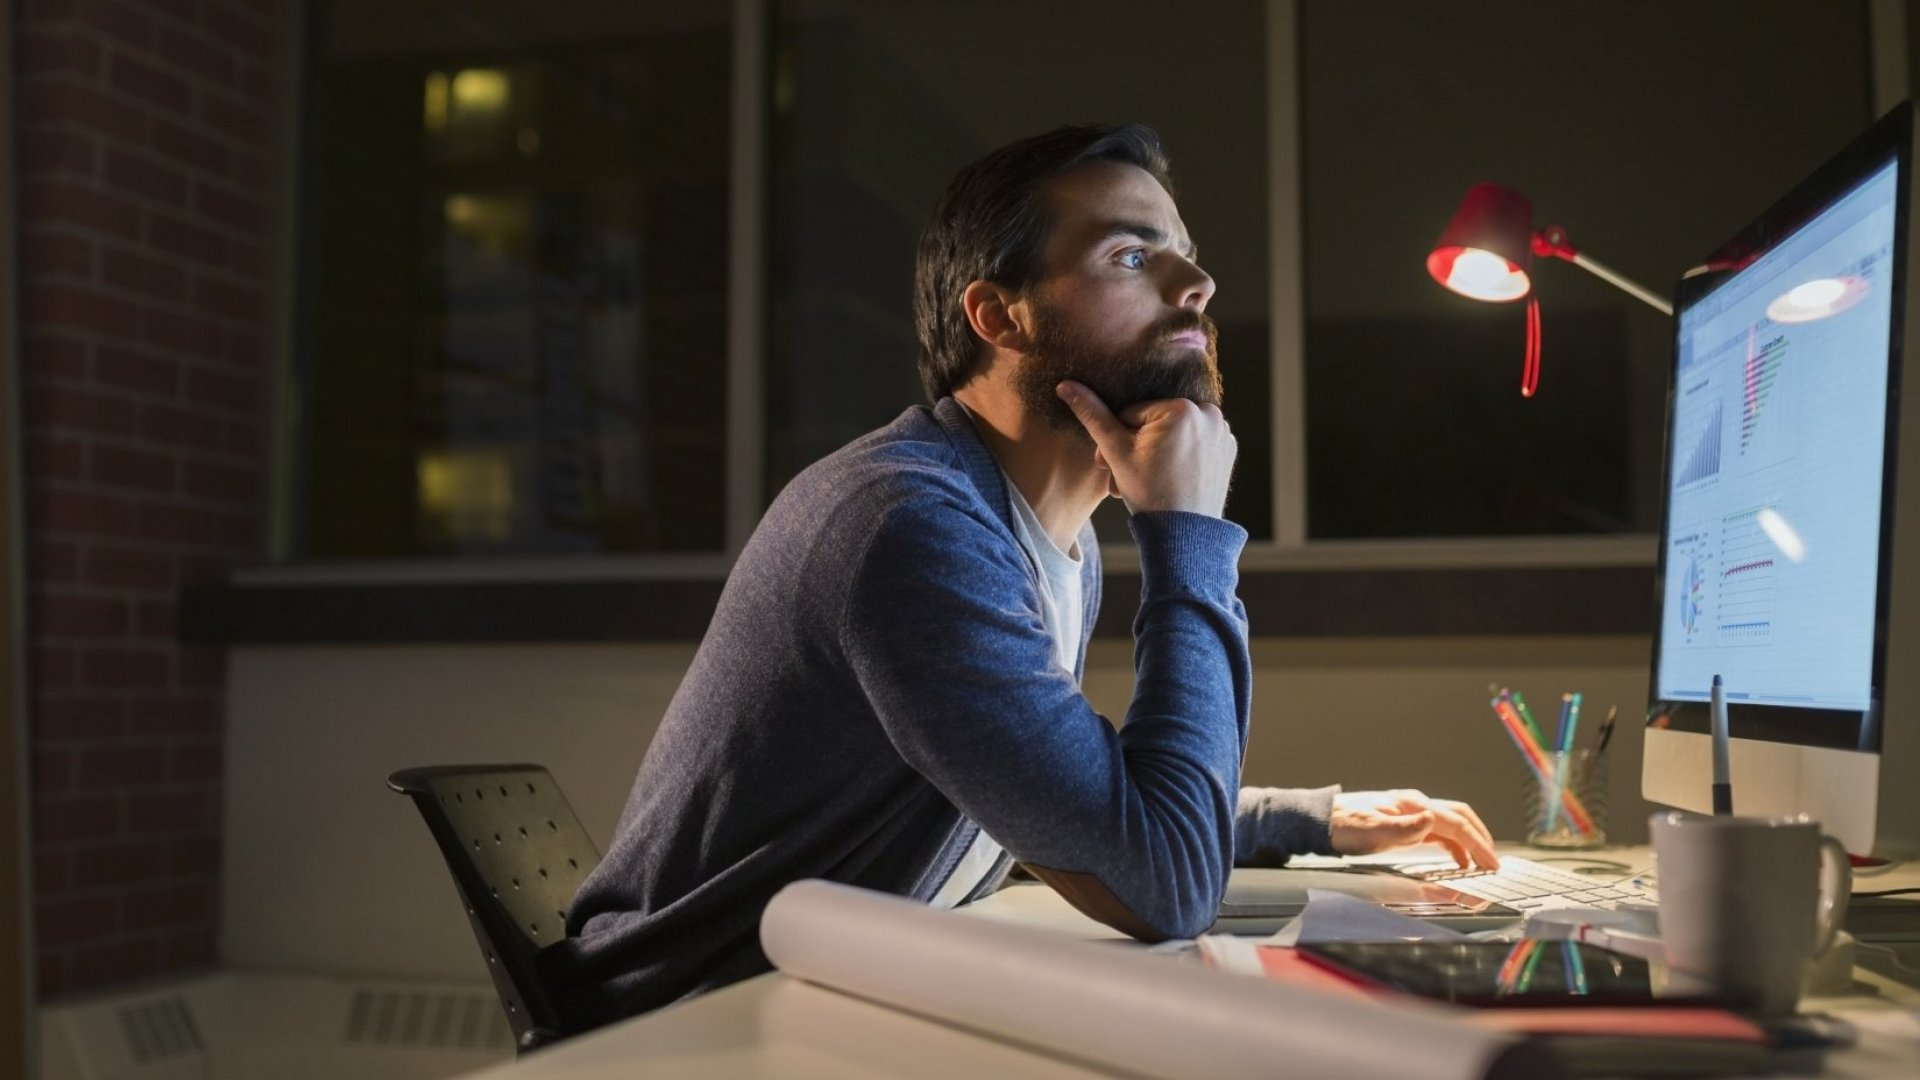 The 15 Most Popular Free Online Courses for Professionals